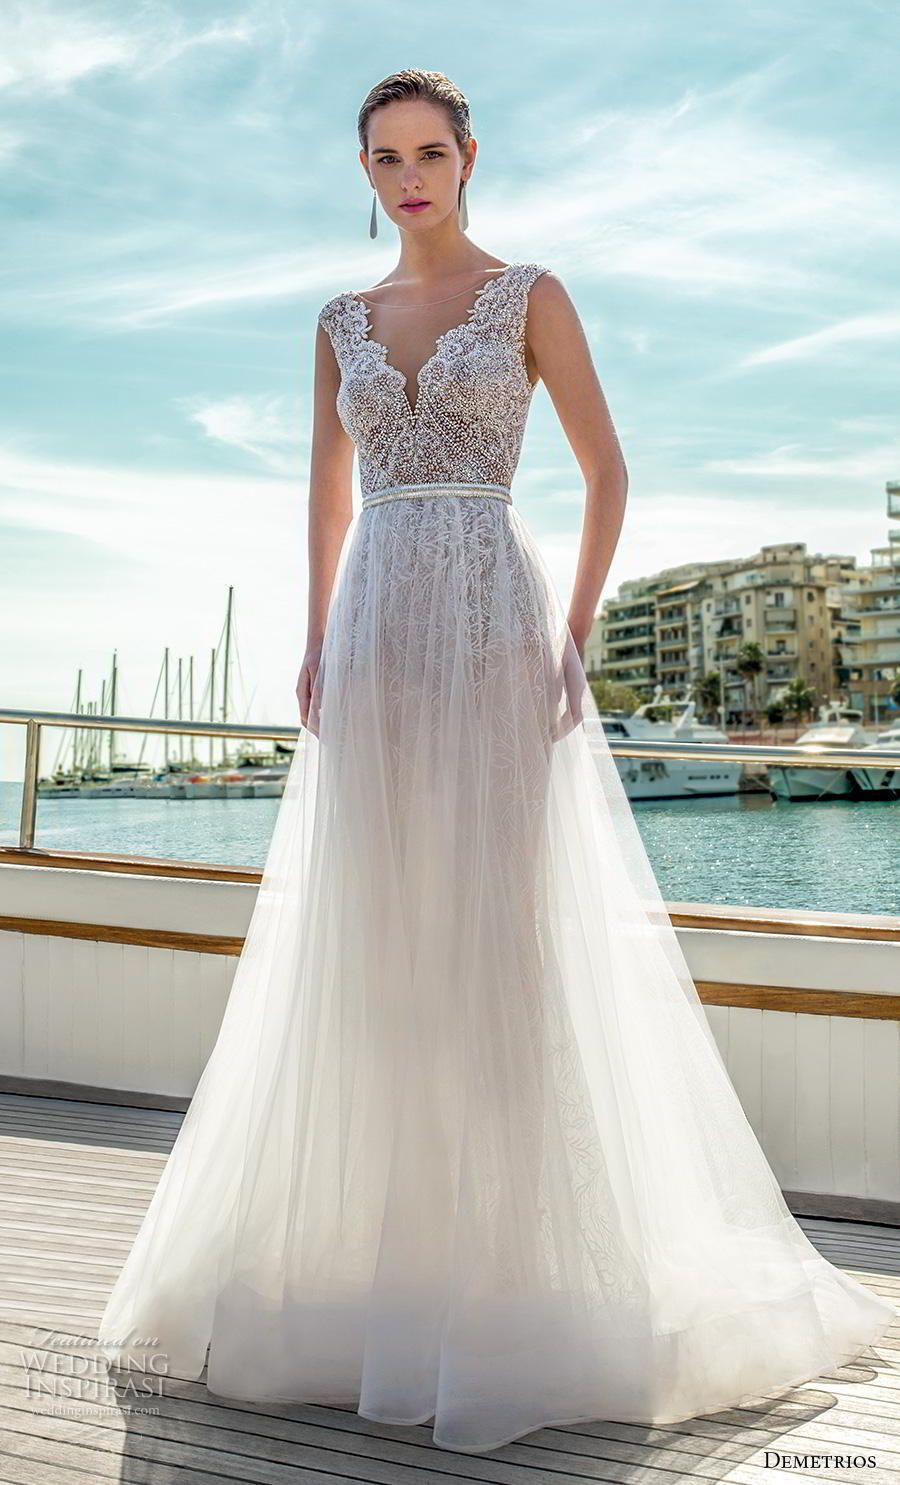 Lace wedding dress with back out january 2019 Destination Romance by Demetrios  Wedding Dresses in